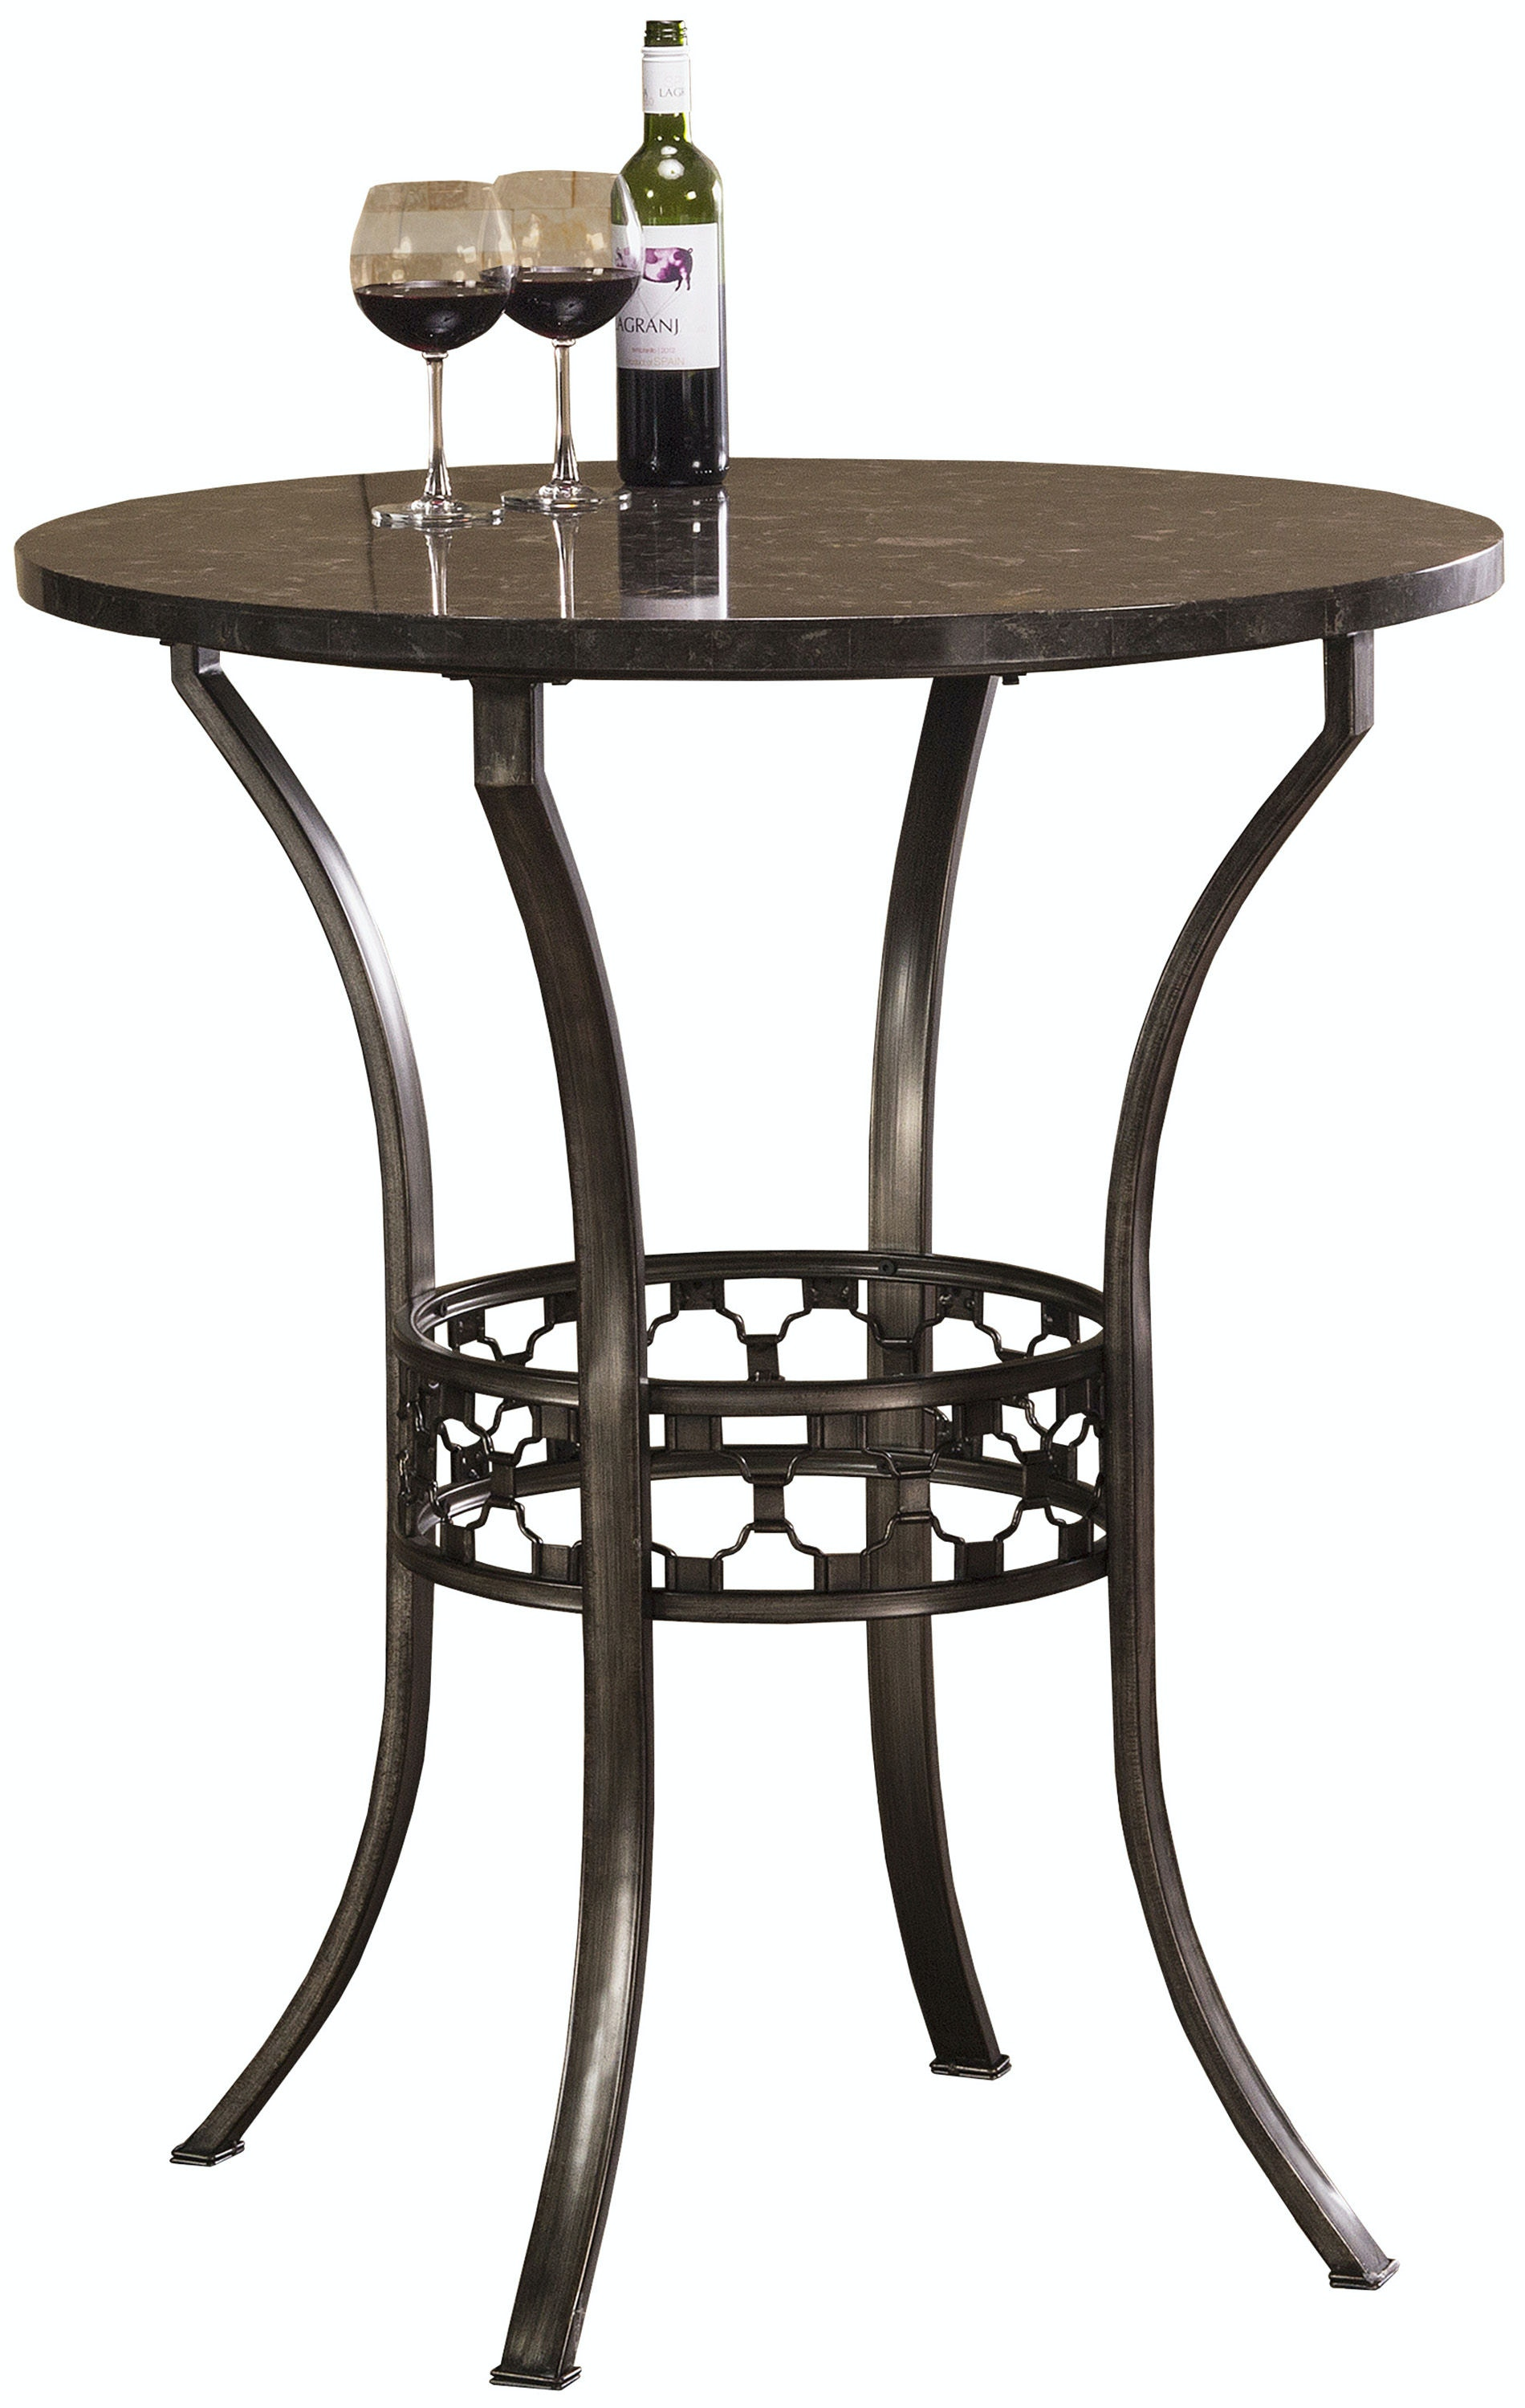 Hillsdale Furniture Brescello 3 Piece Bar Height Bistro Dining Set 5752PTBS